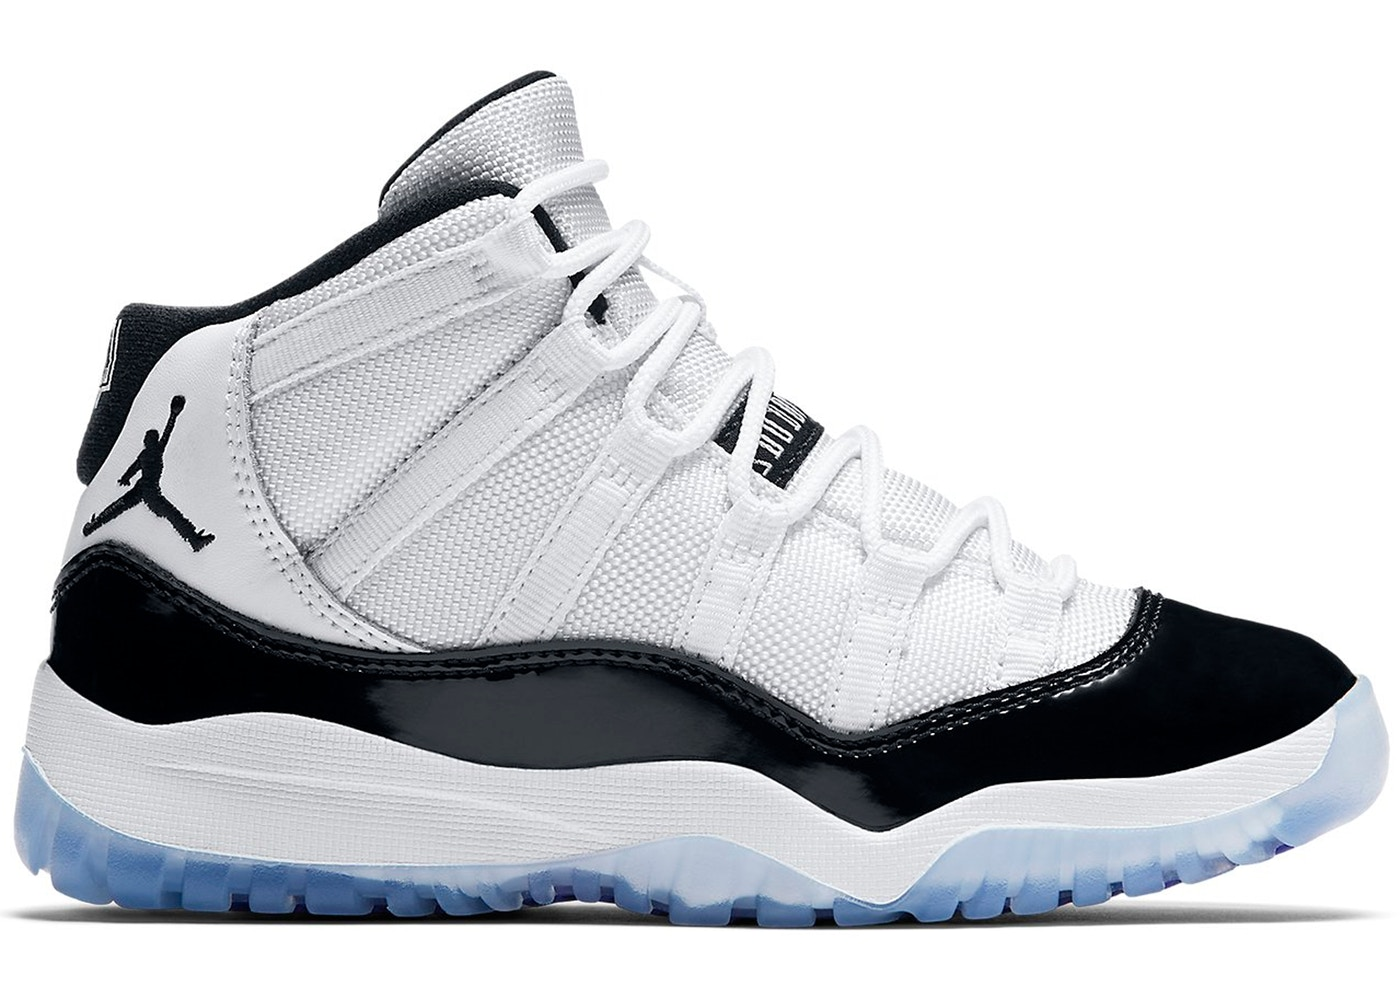 timeless design 15f41 23fe0 Air Jordan 11 Shoes - Release Date